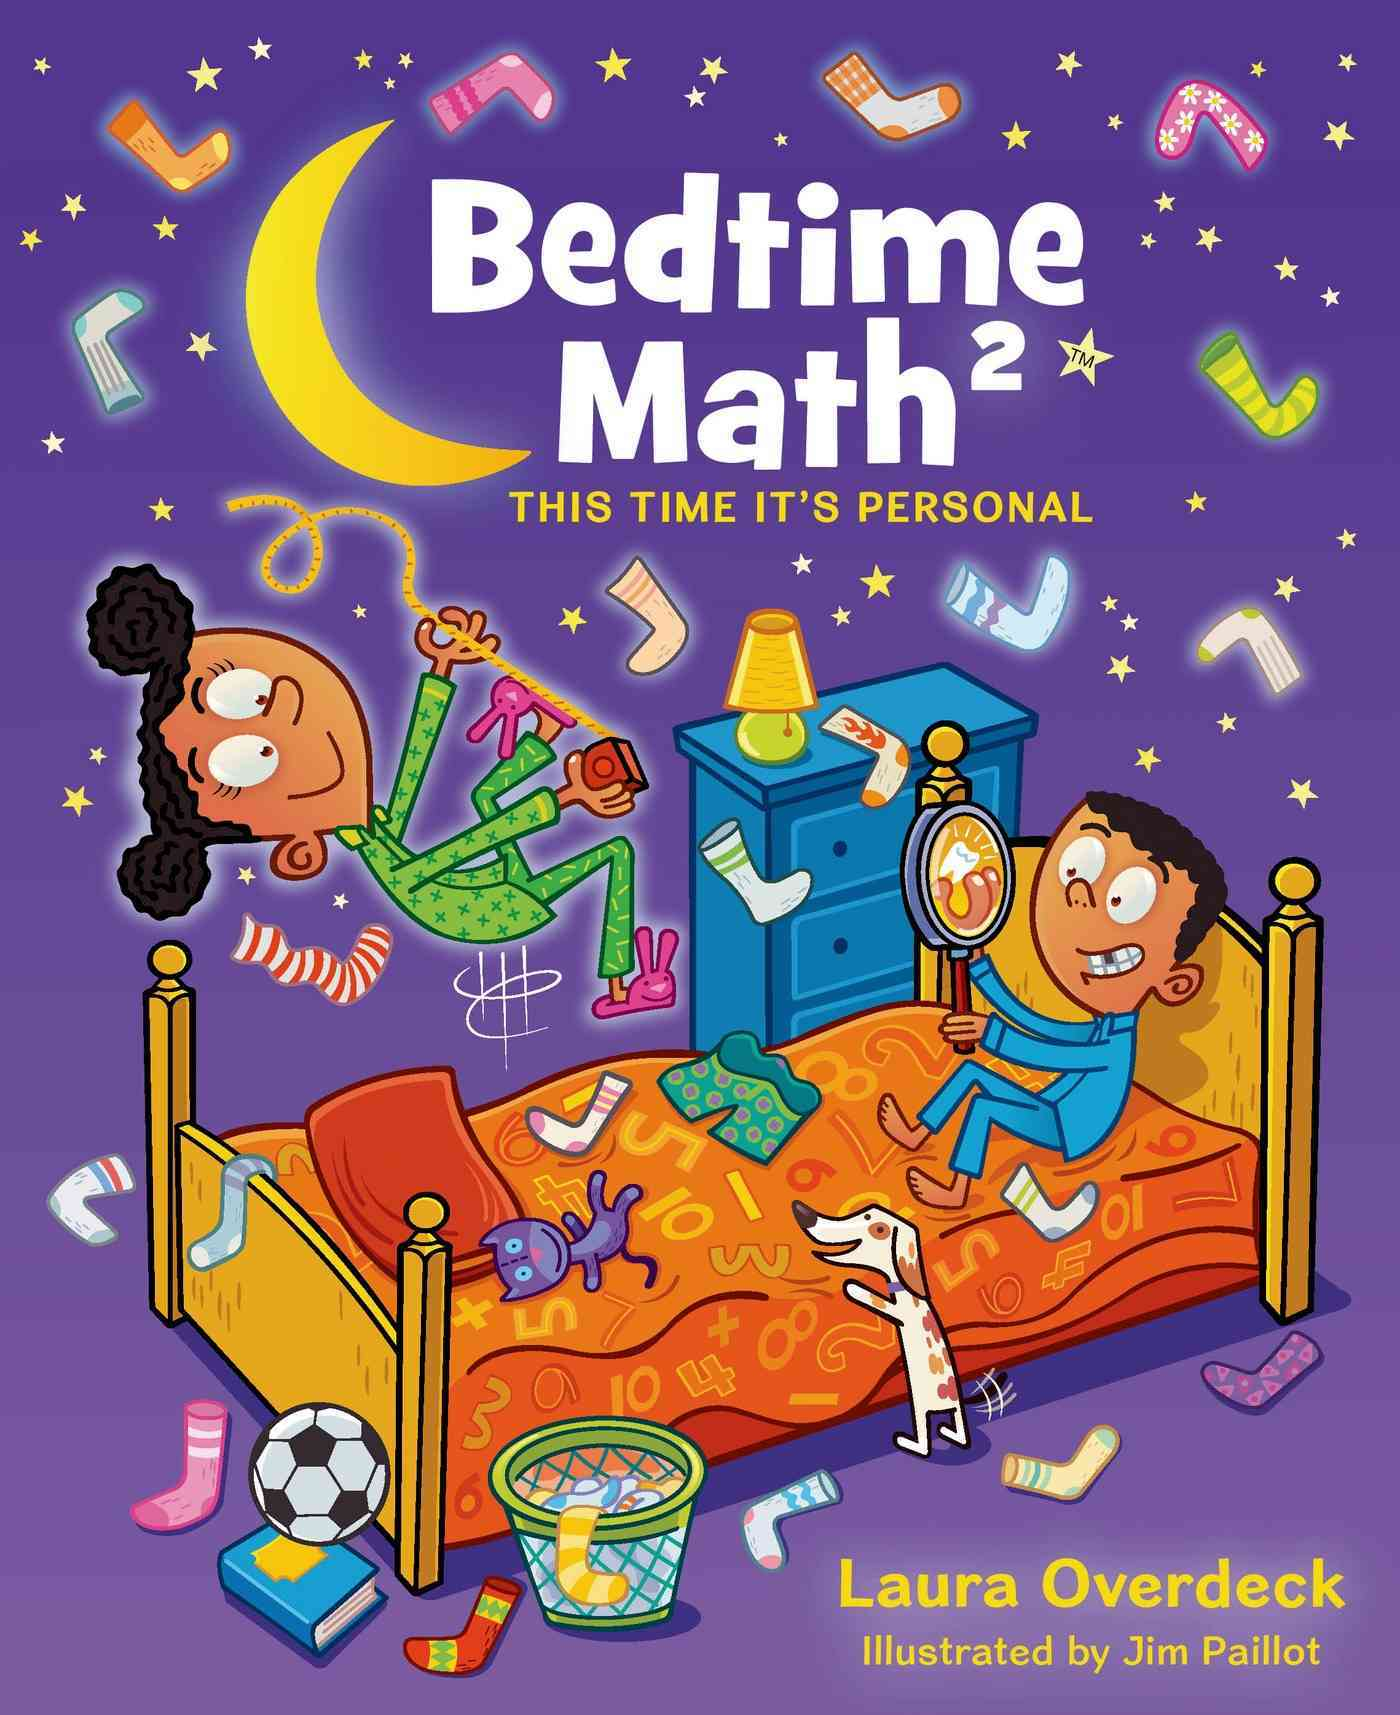 Bedtime Math 2 By Overdeck, Laura